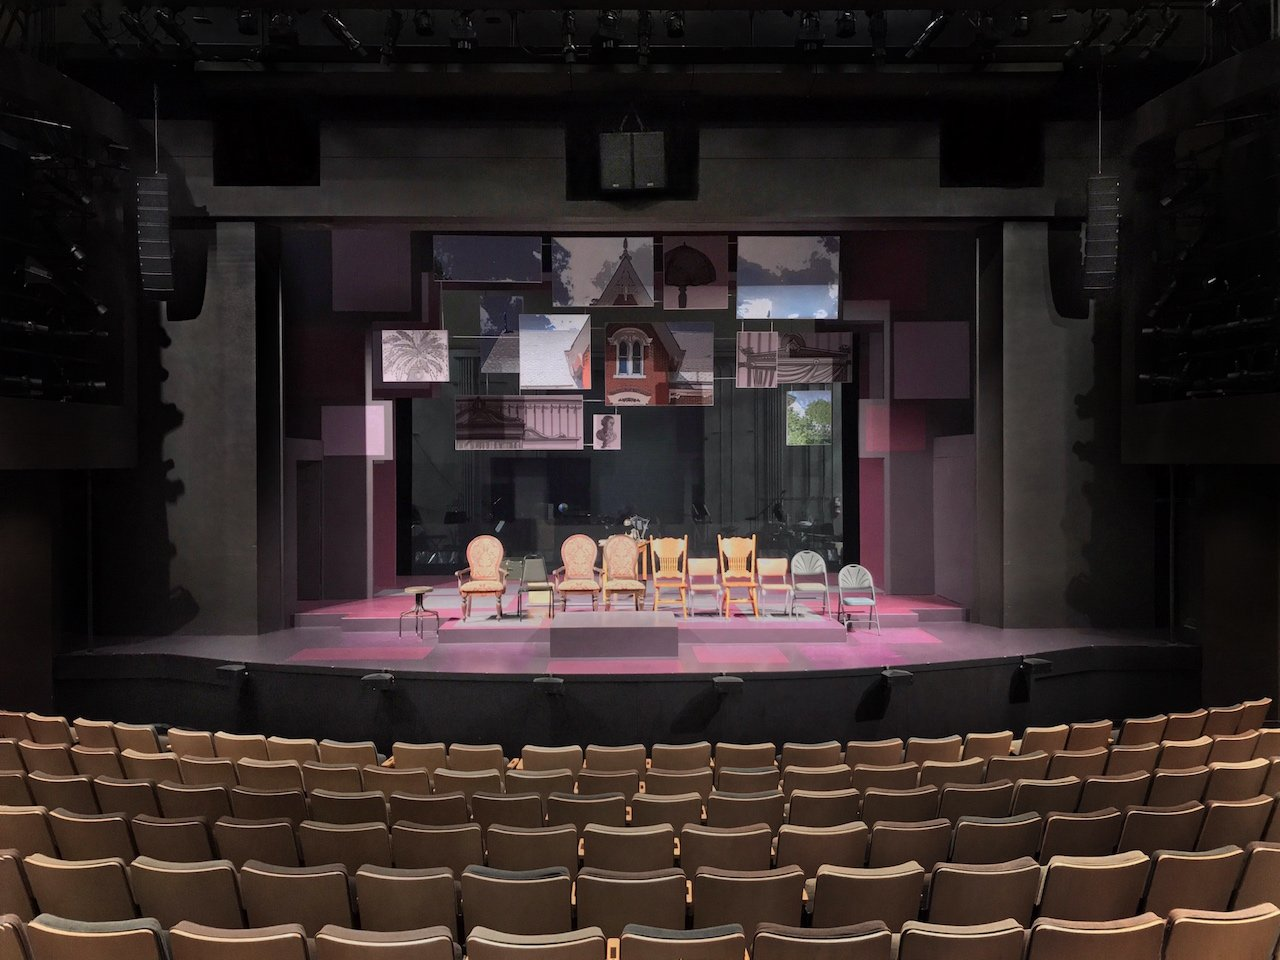 Portland Center Stage Theater copy.JPG